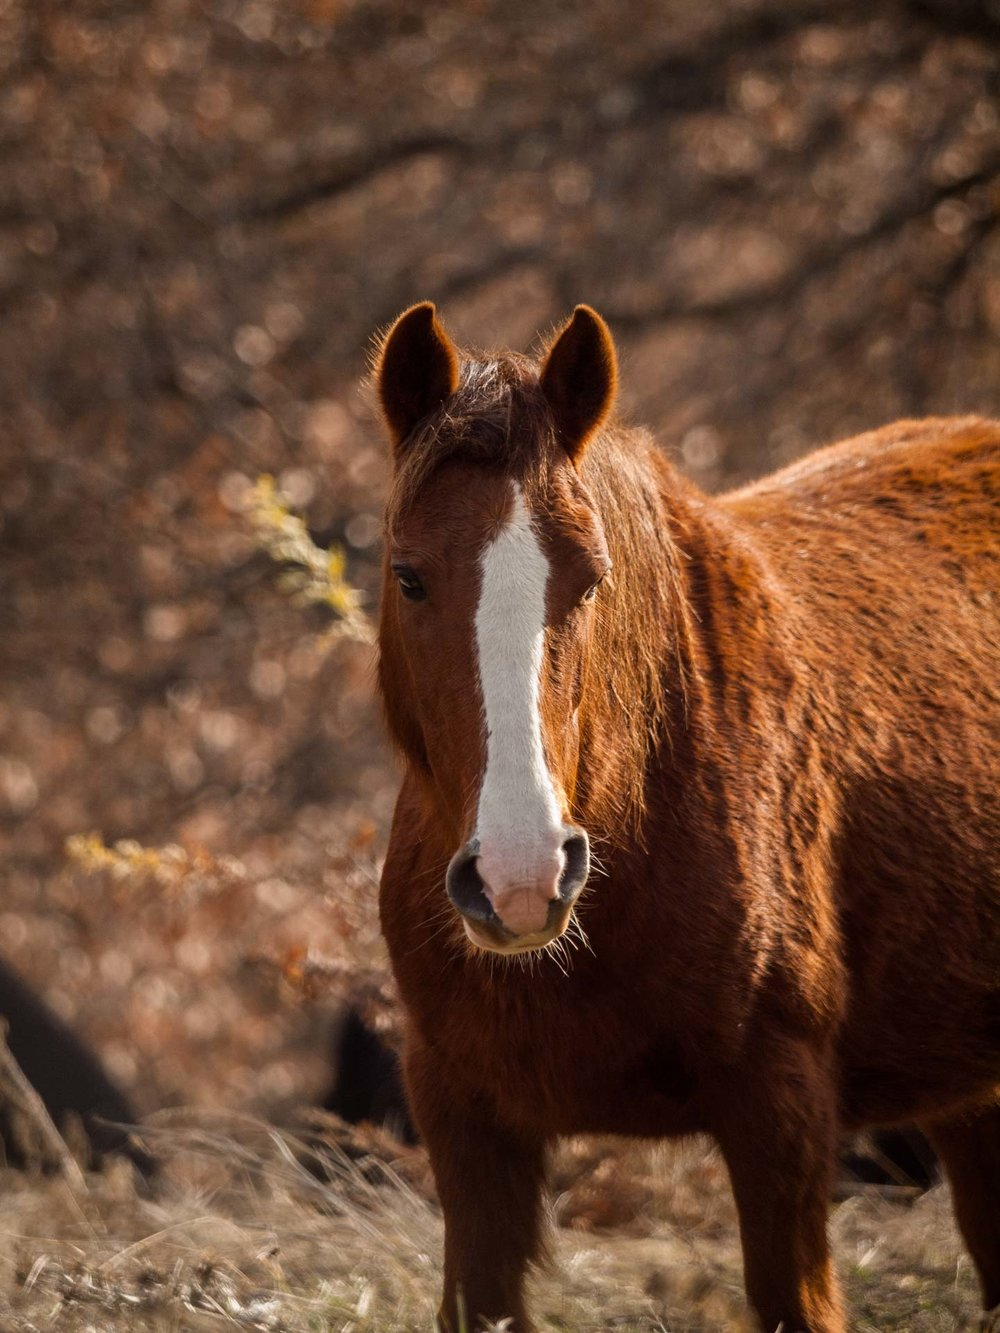 Close-up of a brown, wild horse